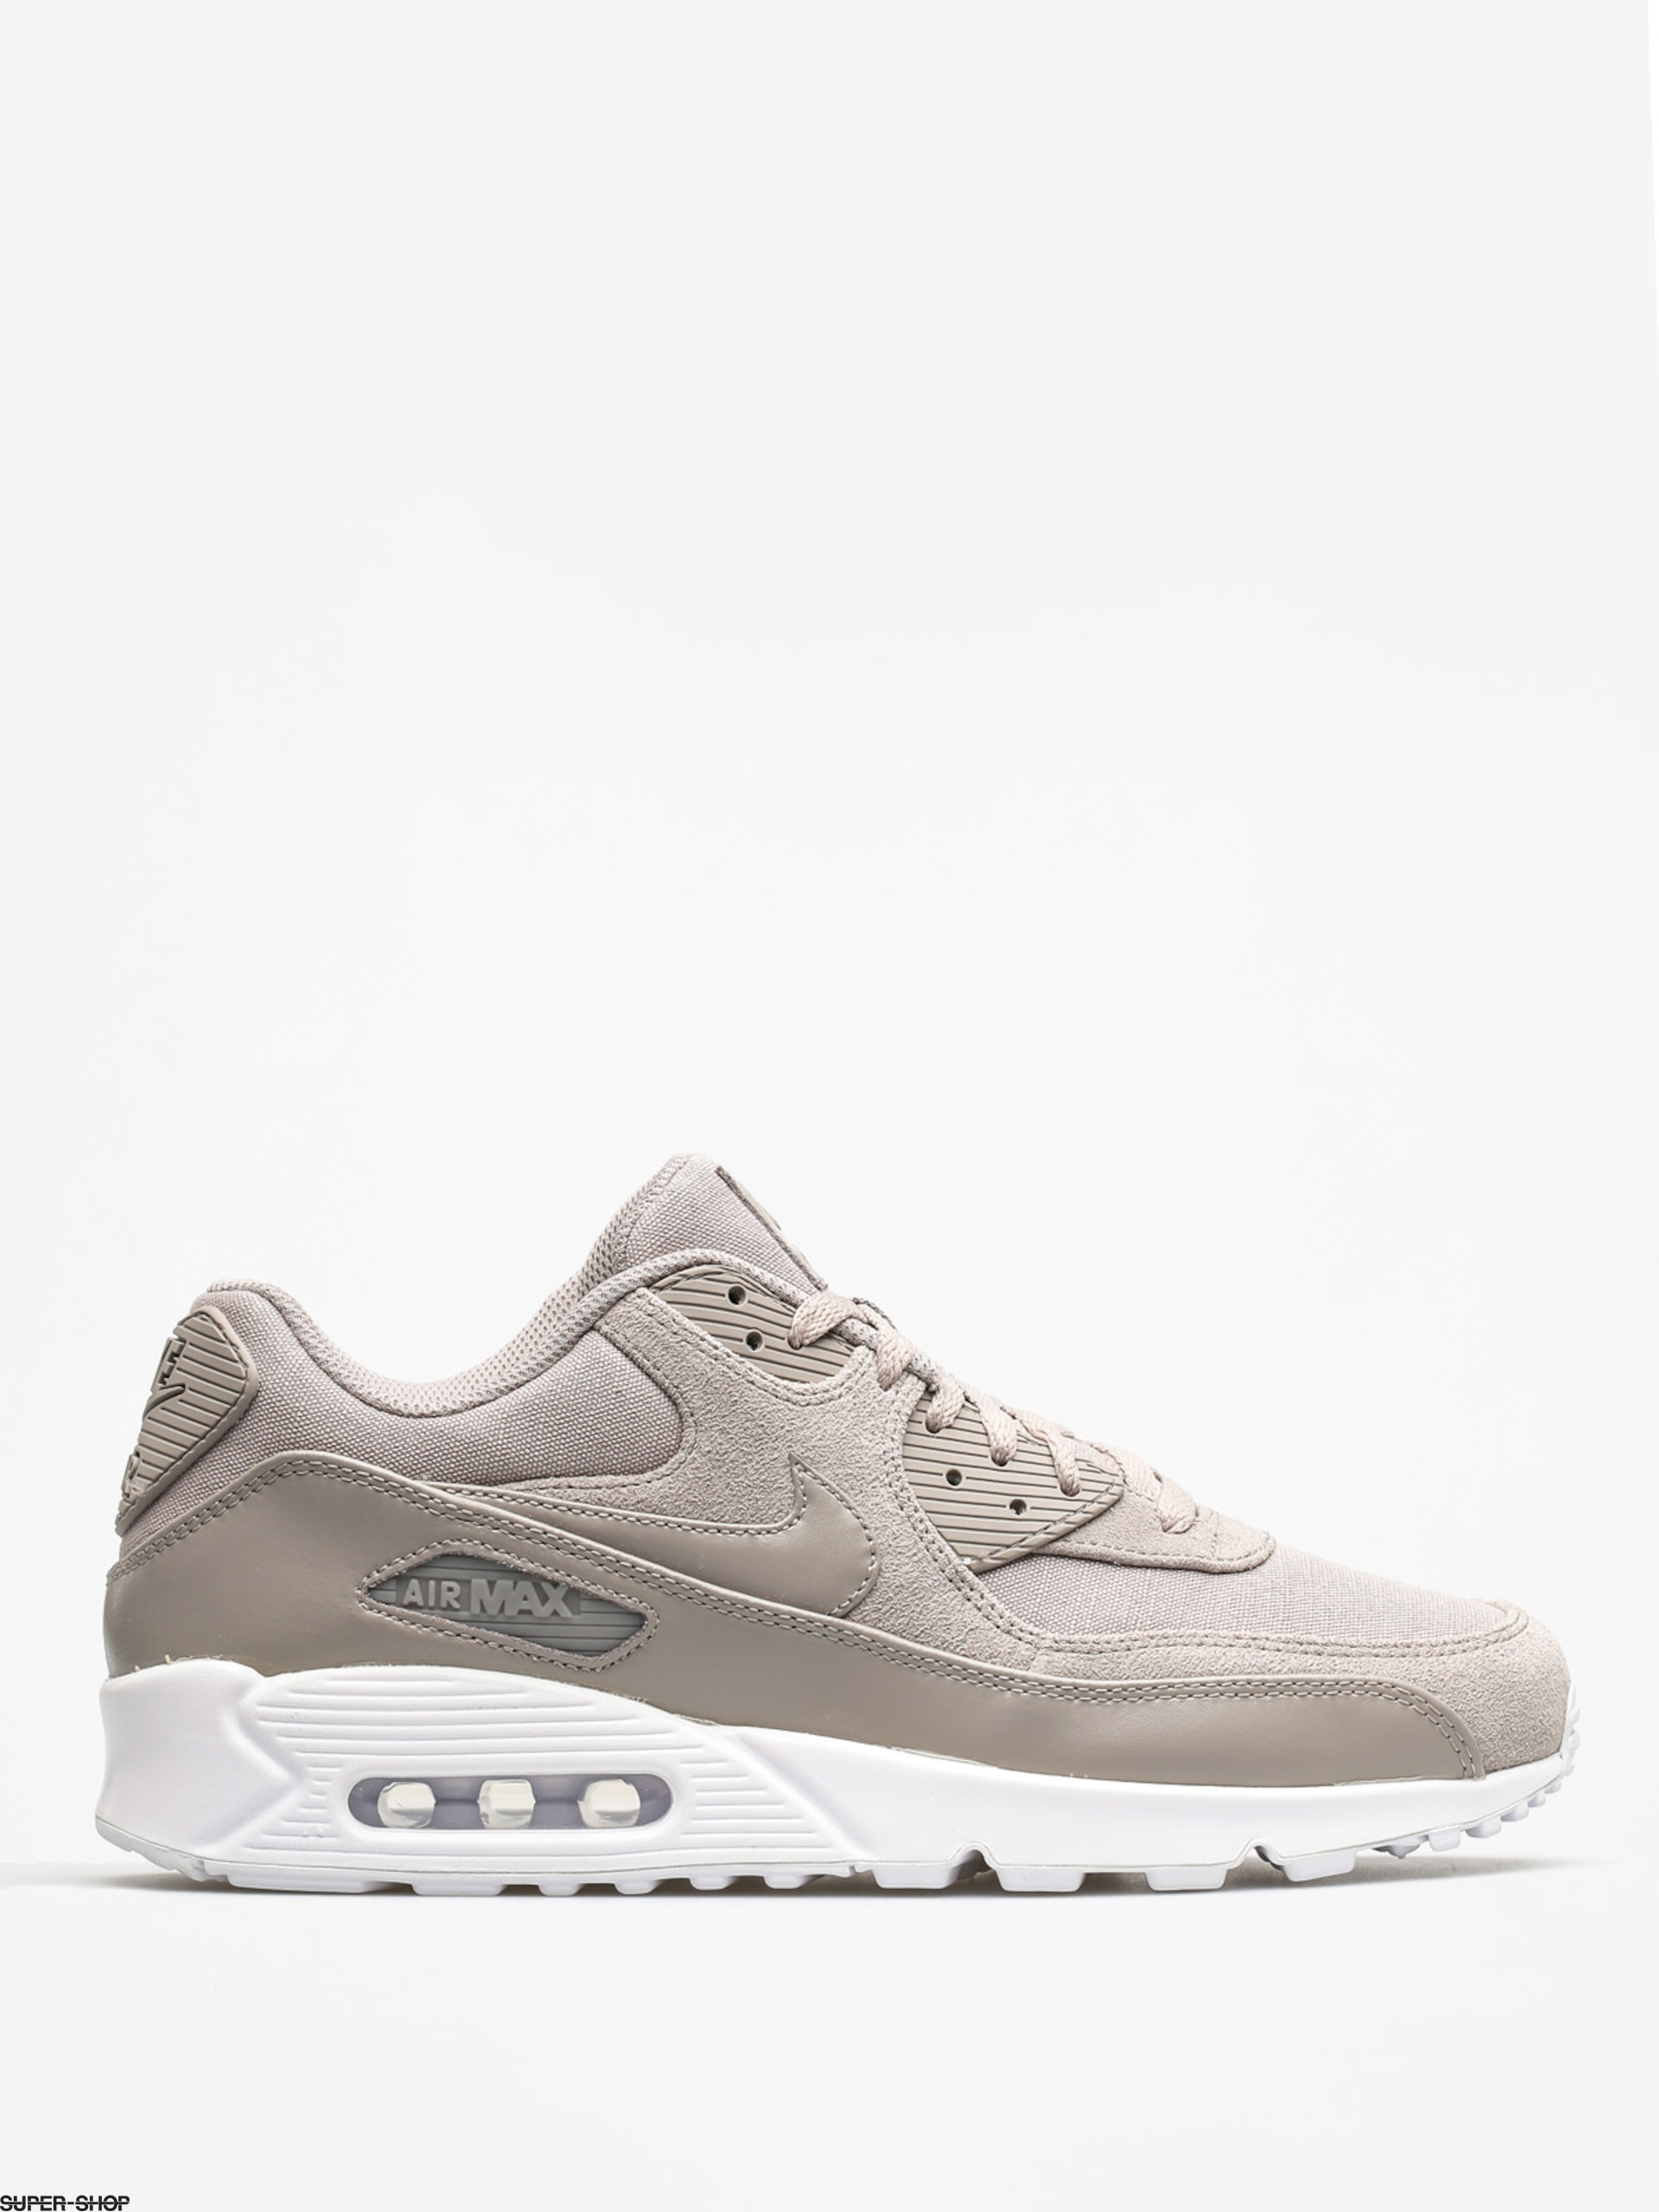 Nike Shoes Air Max 90 (Premium cobblestone/cobblestone white)